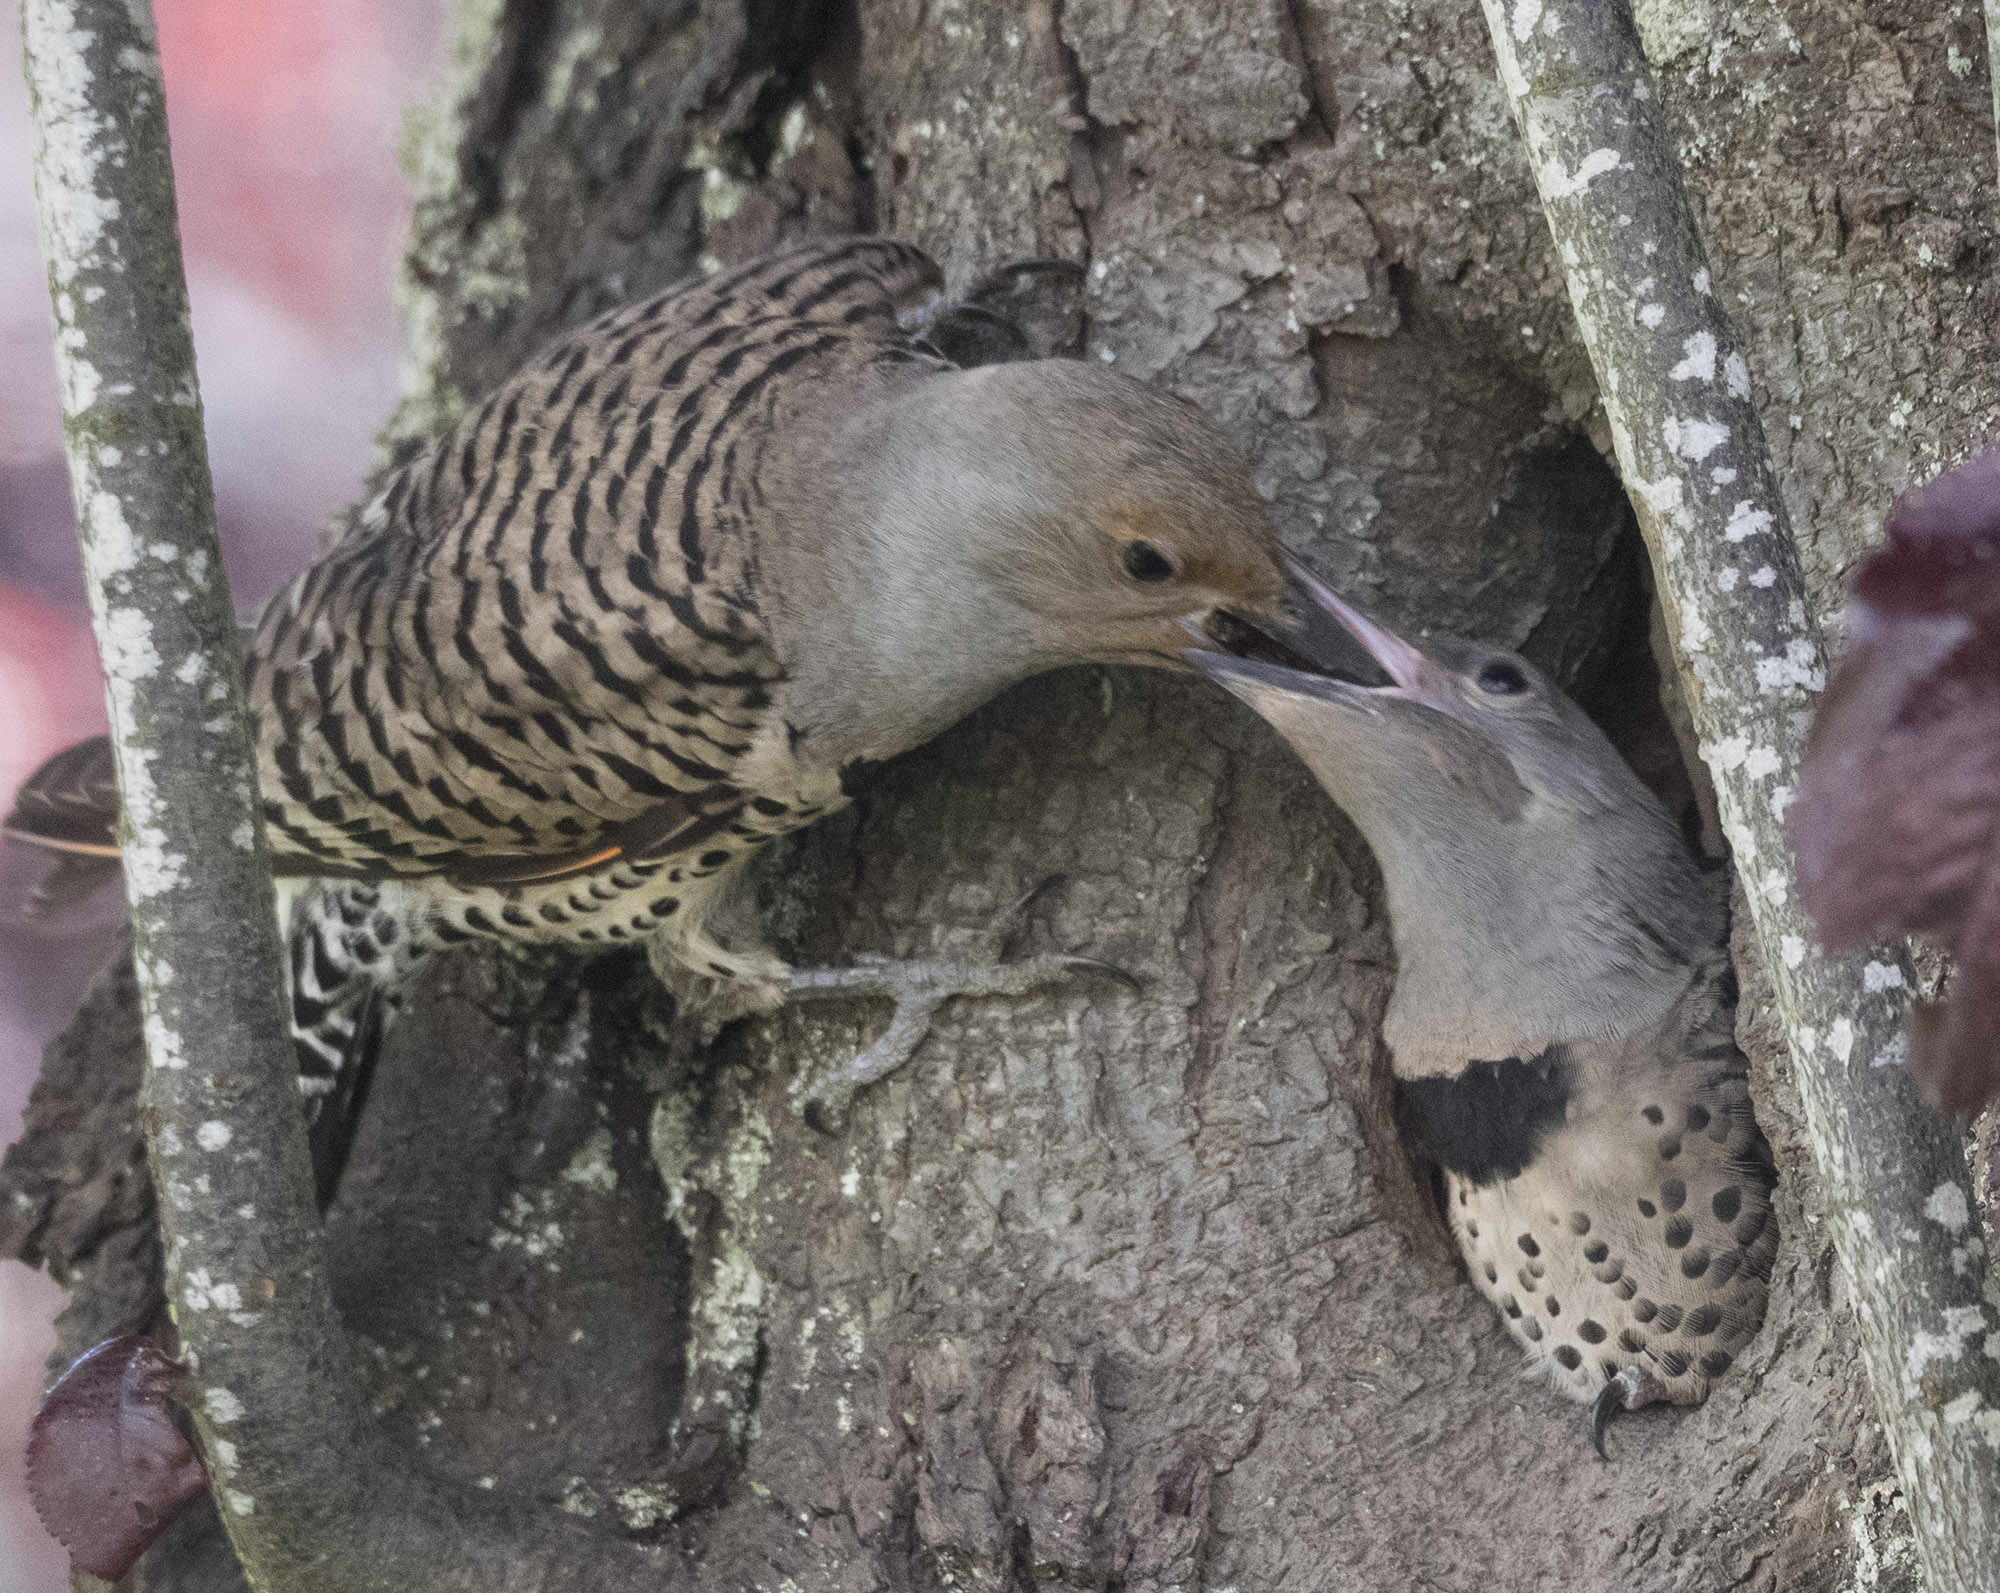 Northern Flicker fledgling being fed by parent